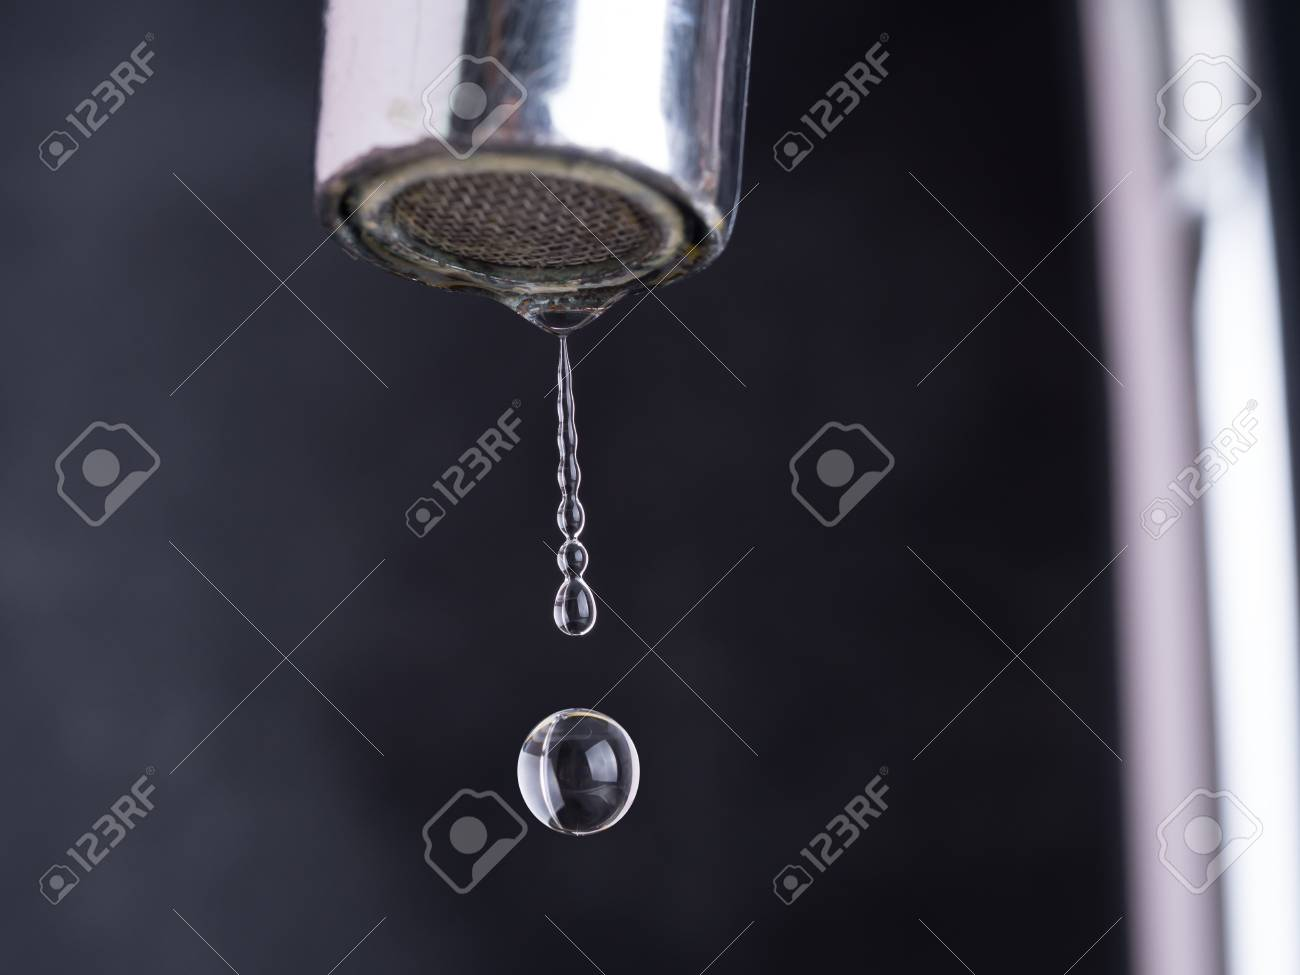 Close Up Shot On Water Drop From Faucet In Stop Motion Stock Photo ...